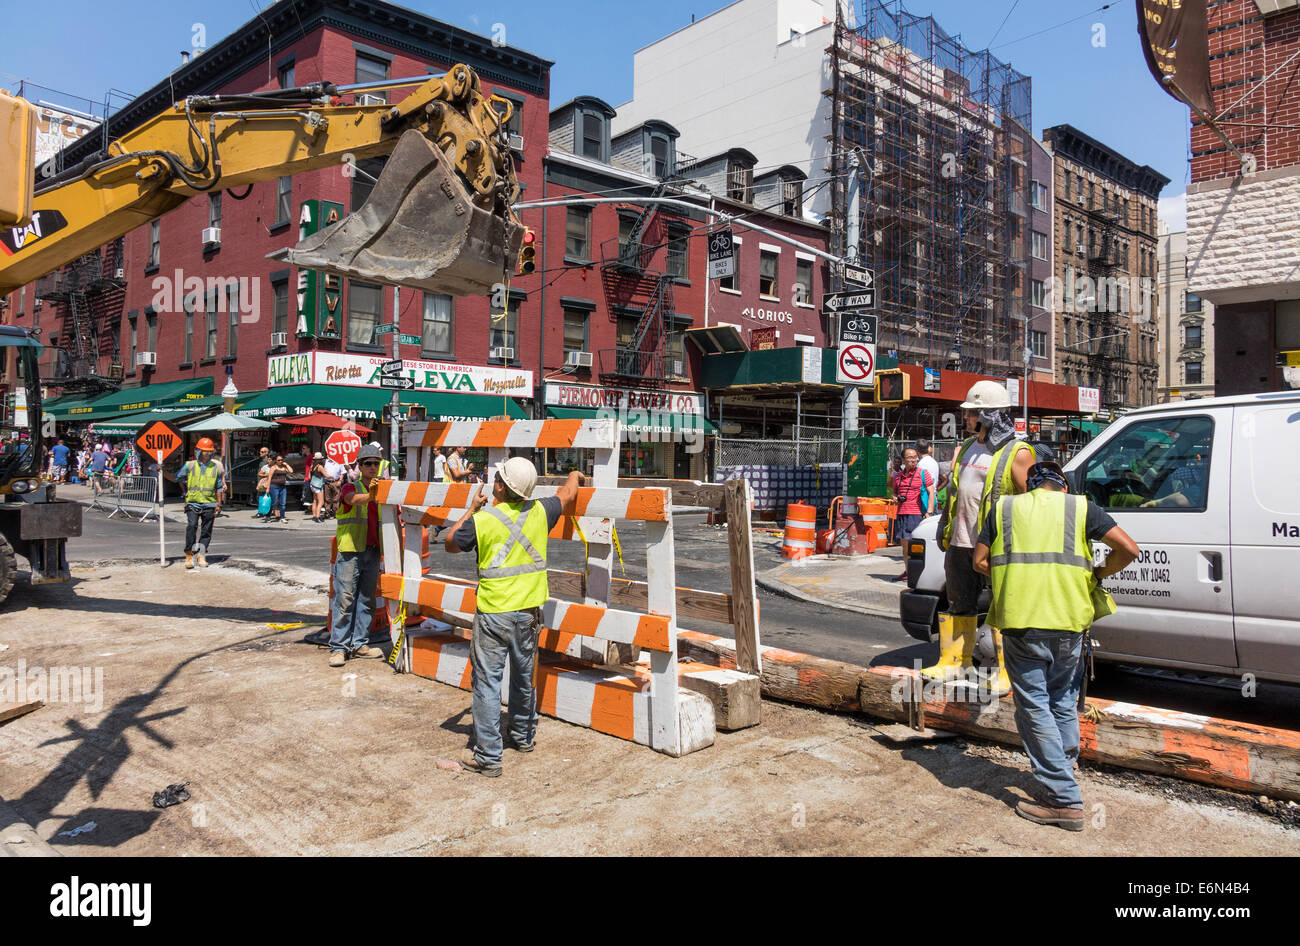 Construction workers guiding the shovel of a backhoe loader on Mulberry Street in New York City - Stock Image